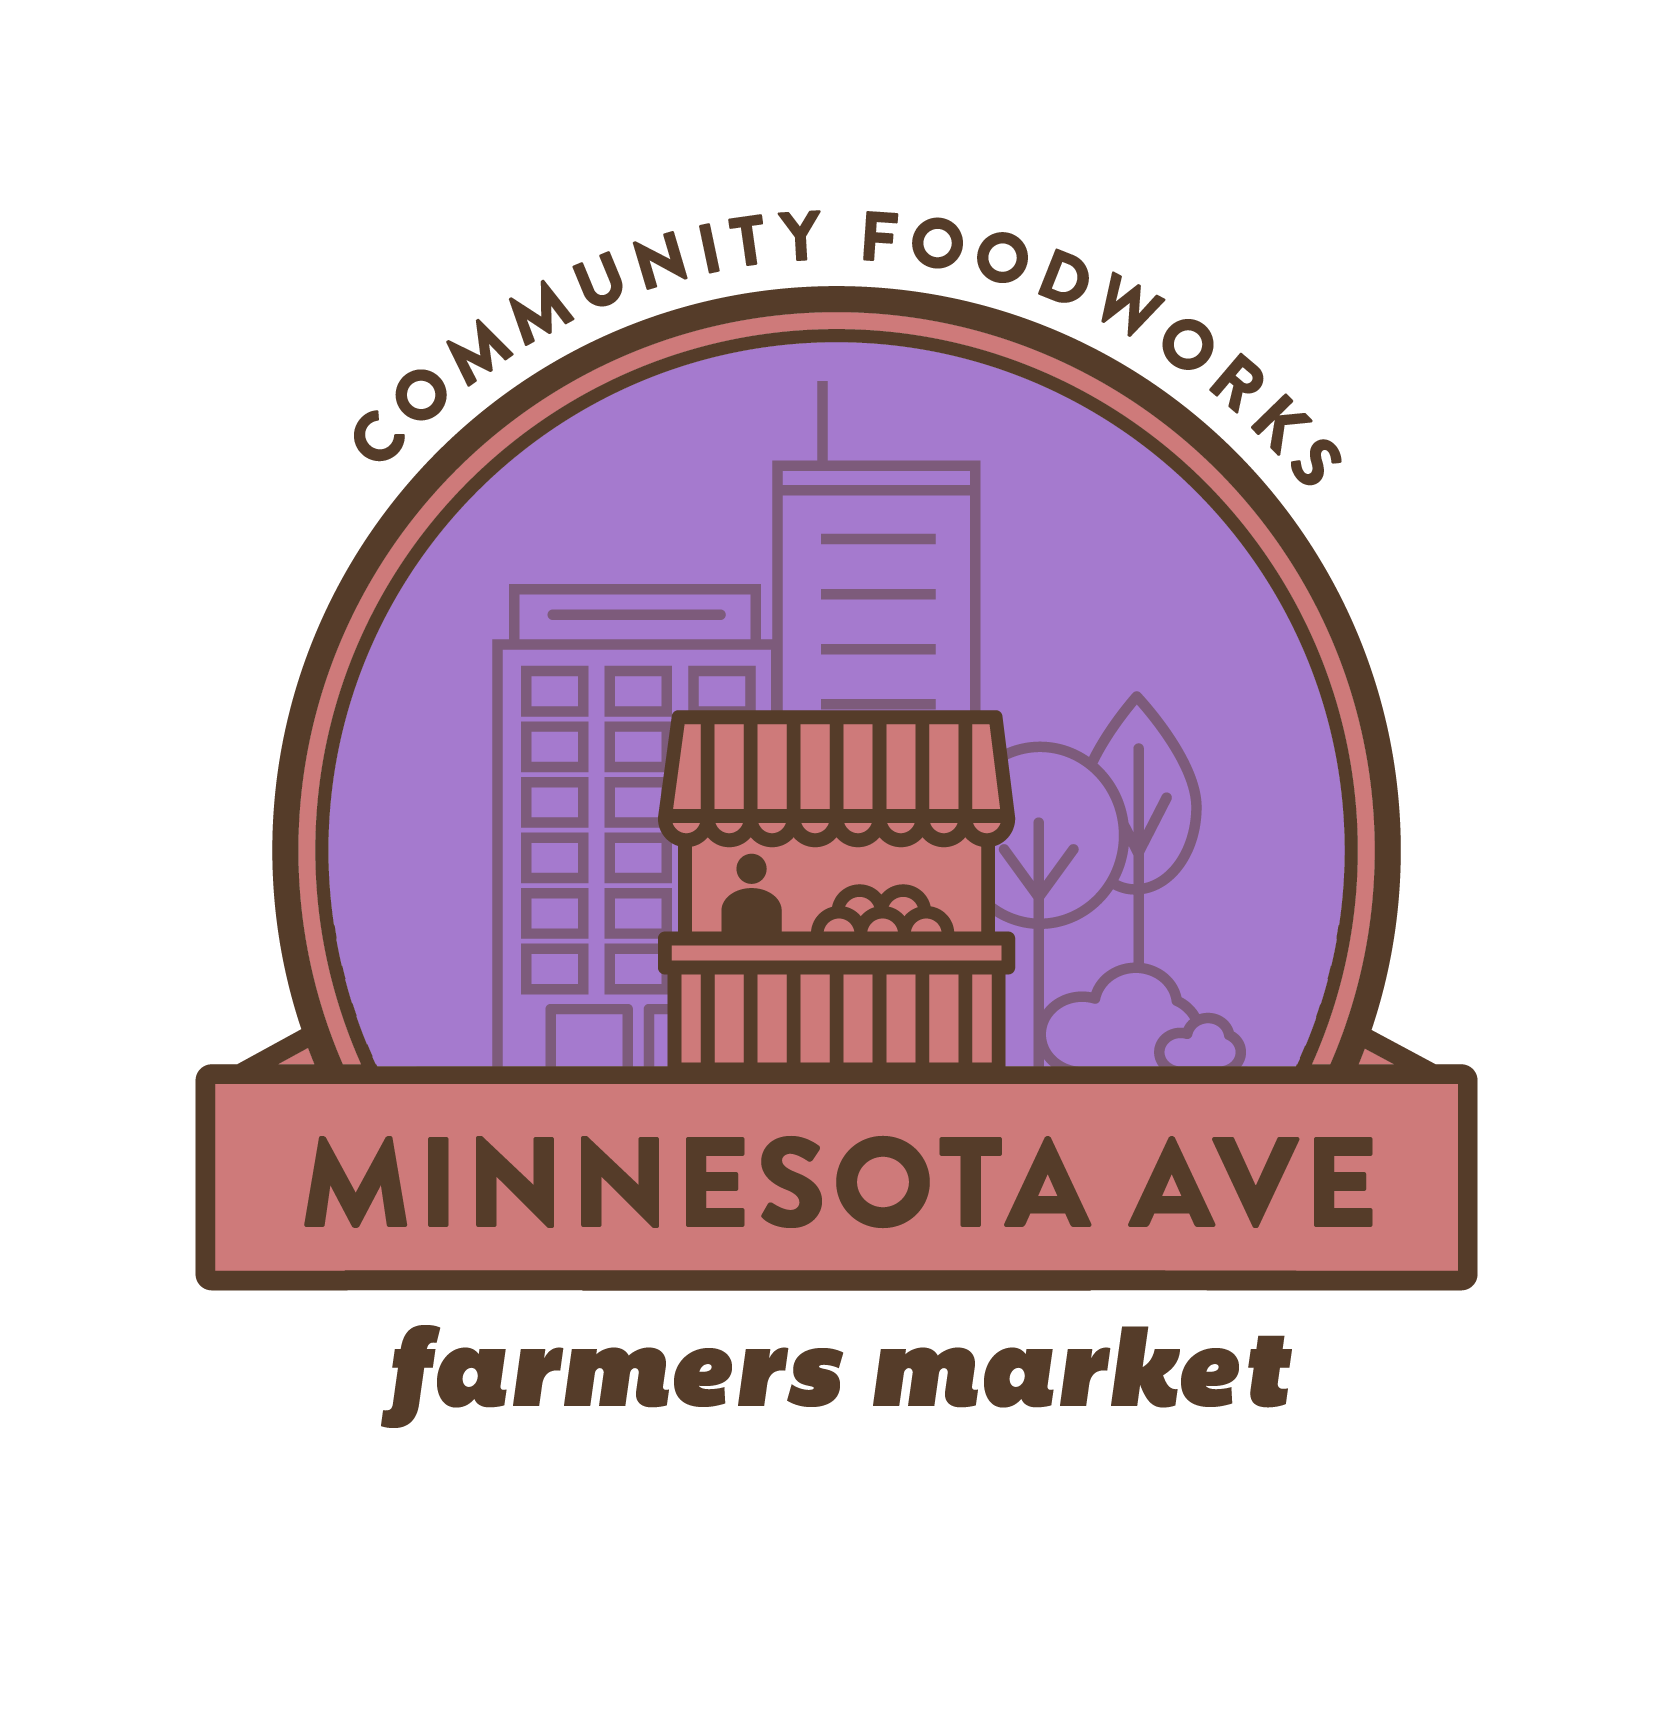 CFW_Farmers-Markets_MinnesotaAve-01.png